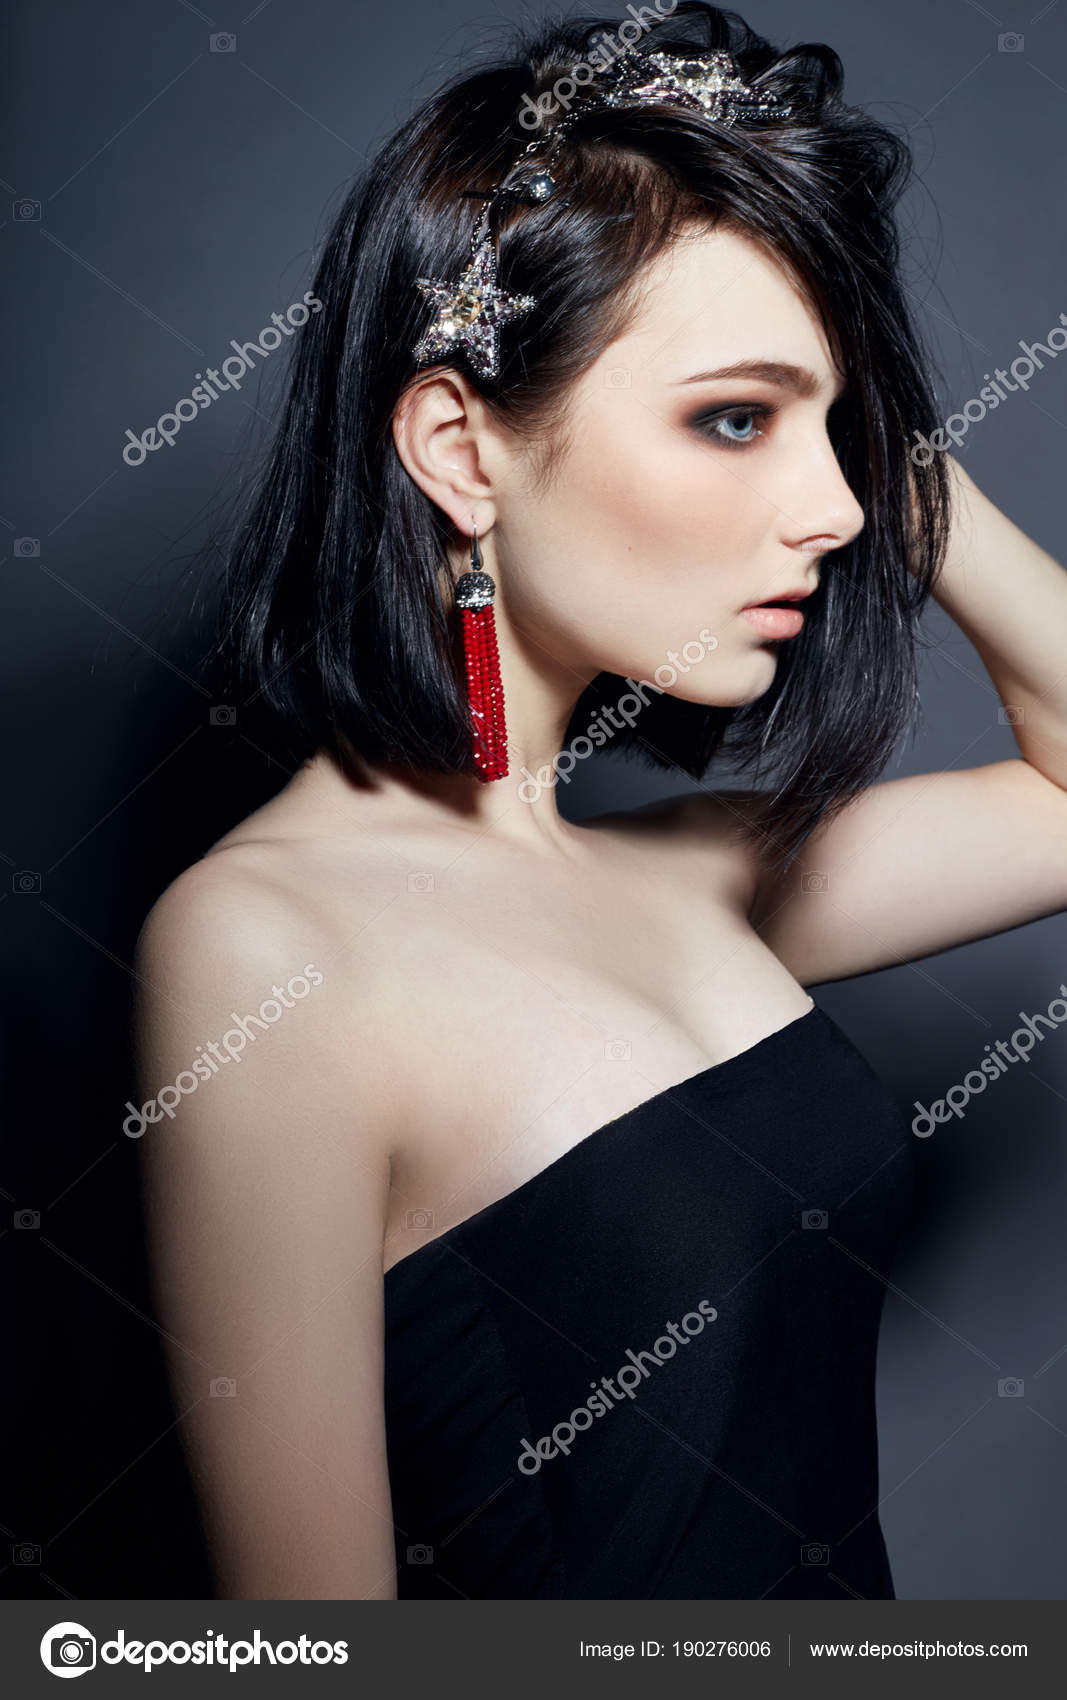 Beautiful Brunette Girl With Big Blue Eyes Earrings And Necklace